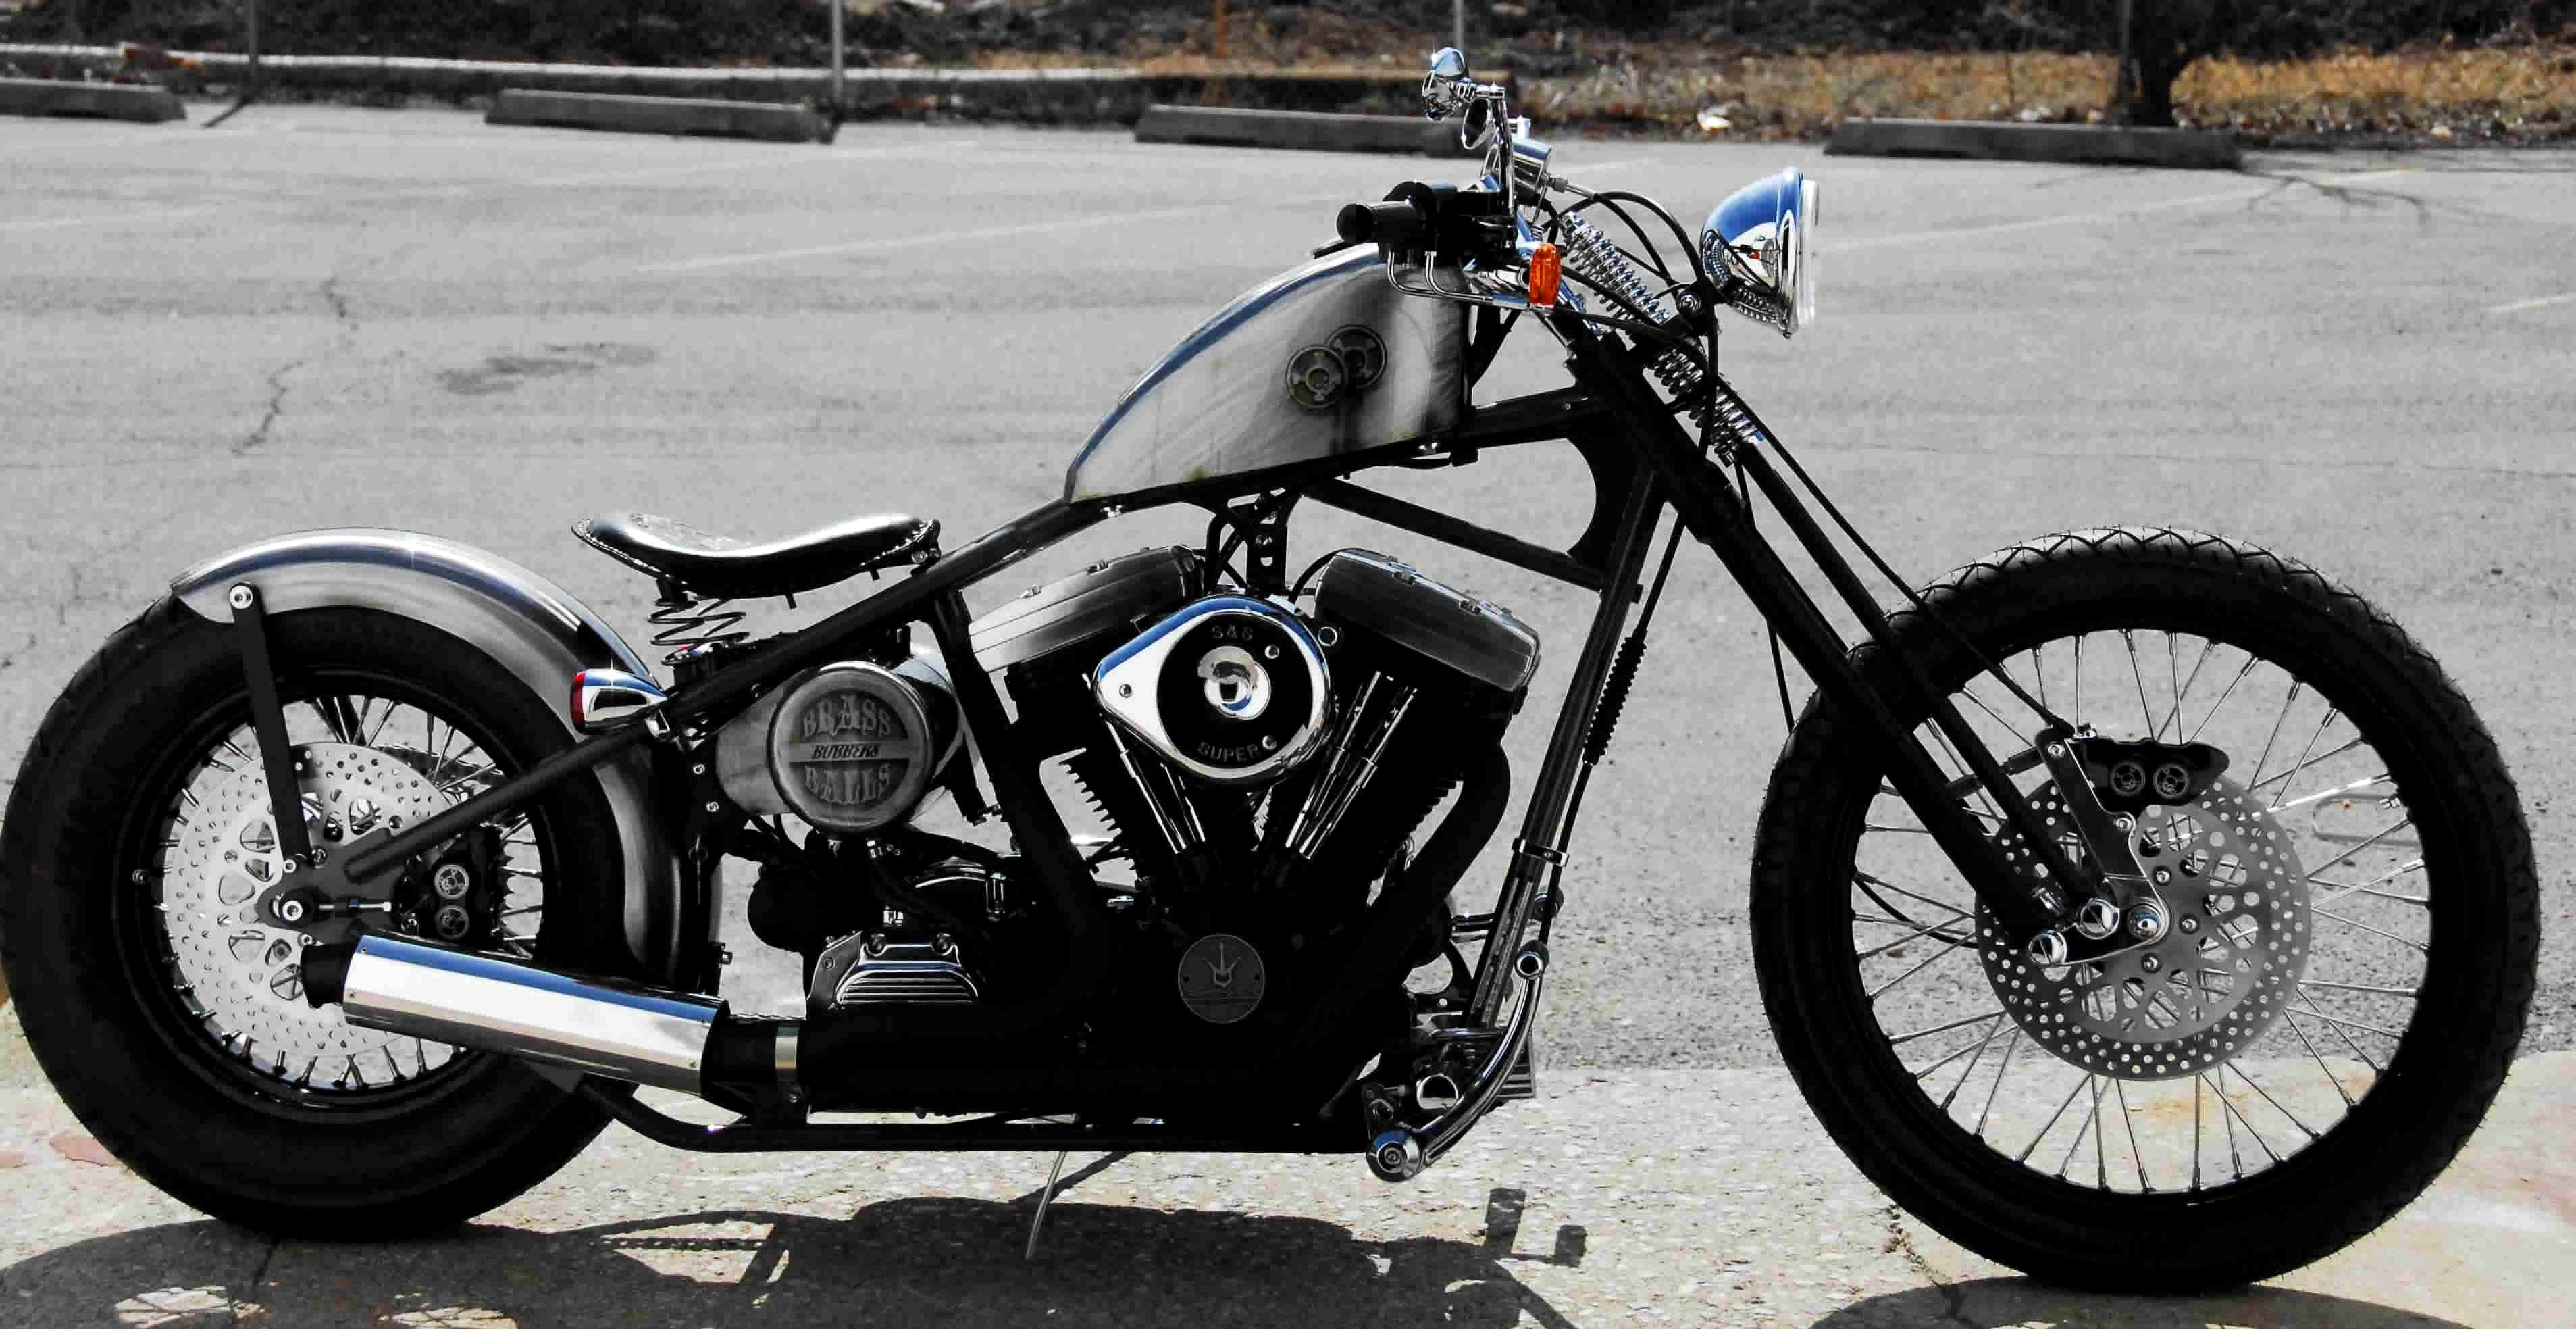 Res: 3814x1967, Bobber Motorcycle high definition wallpapers